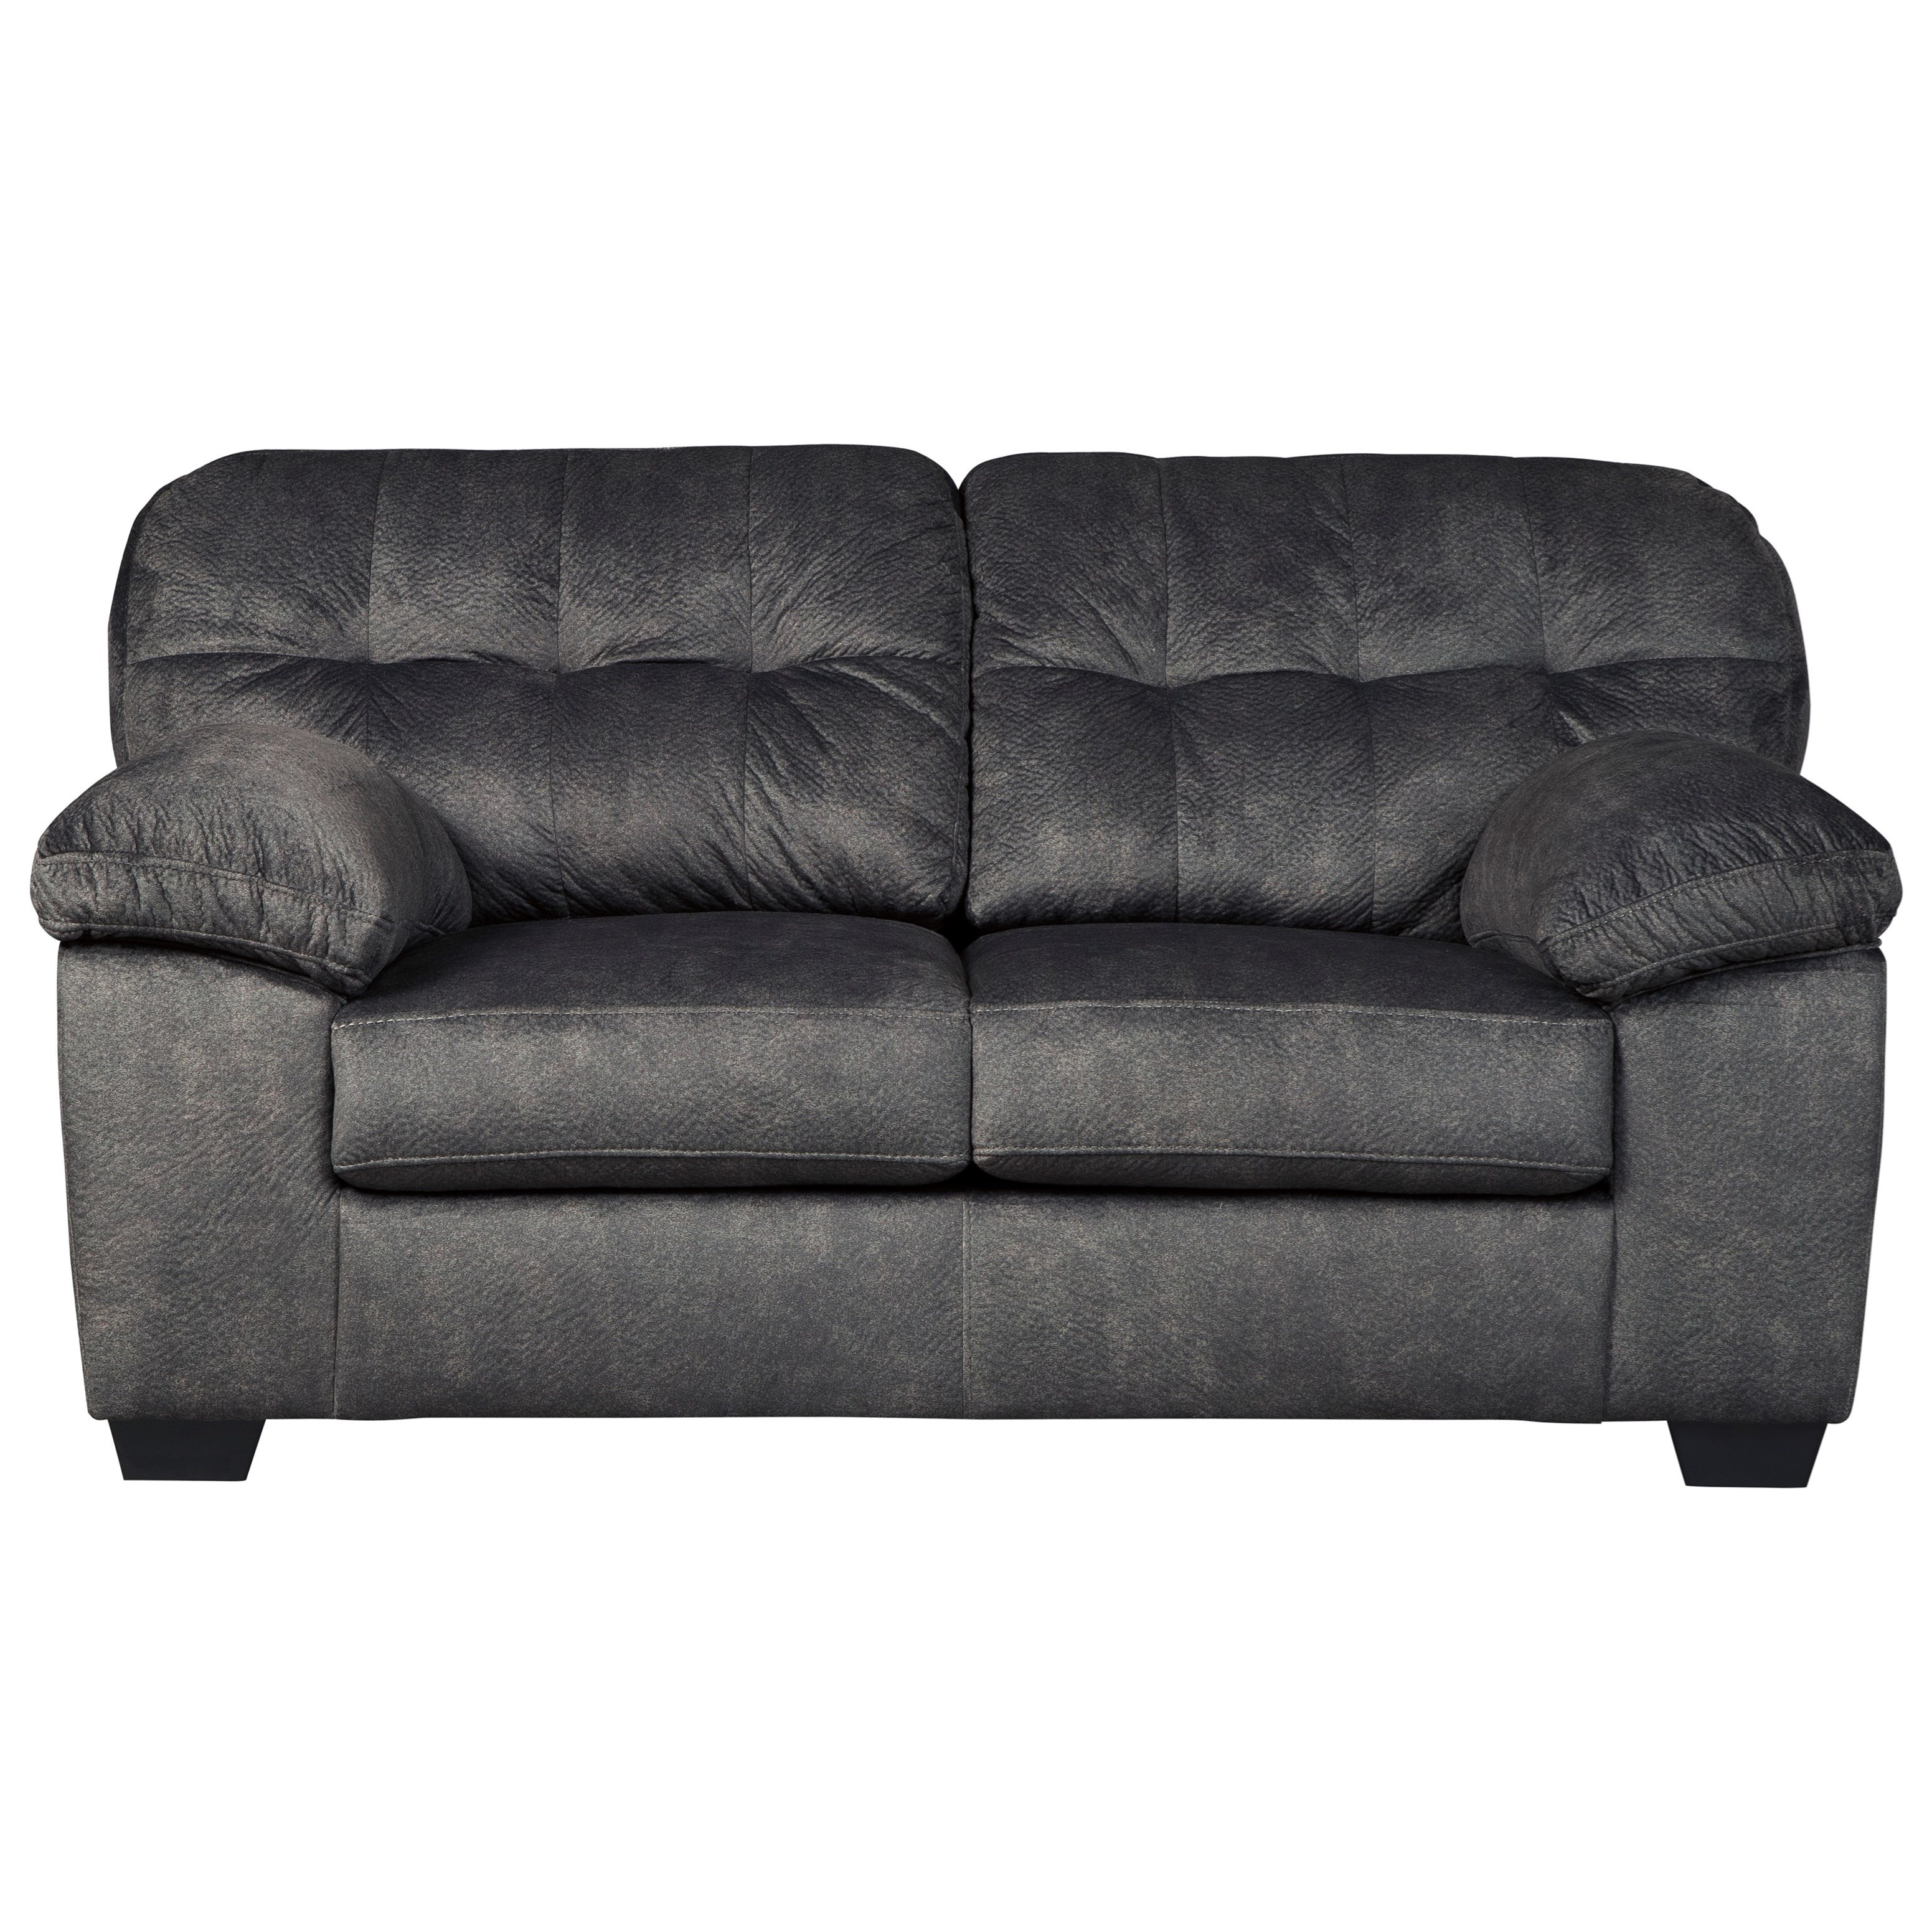 Accrington Loveseat by Signature Design by Ashley at Northeast Factory Direct